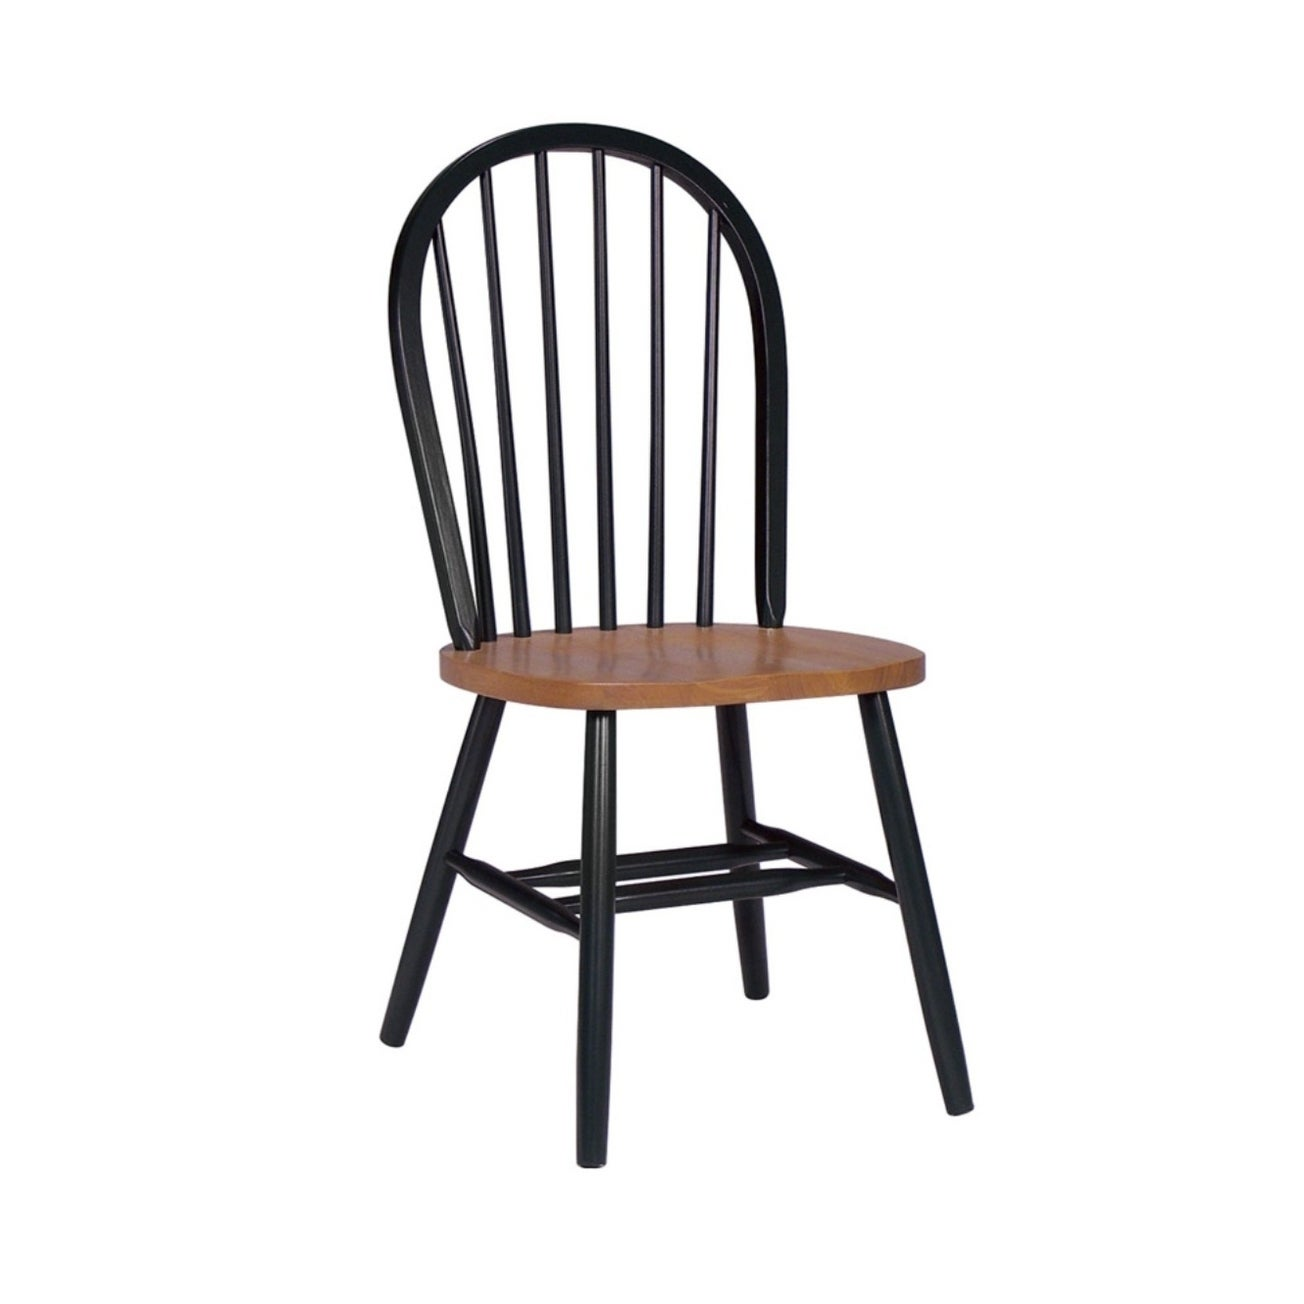 International Concepts Windsor Spindleback Chair With Plain Legs   Free  Shipping Today   Overstock   24355508